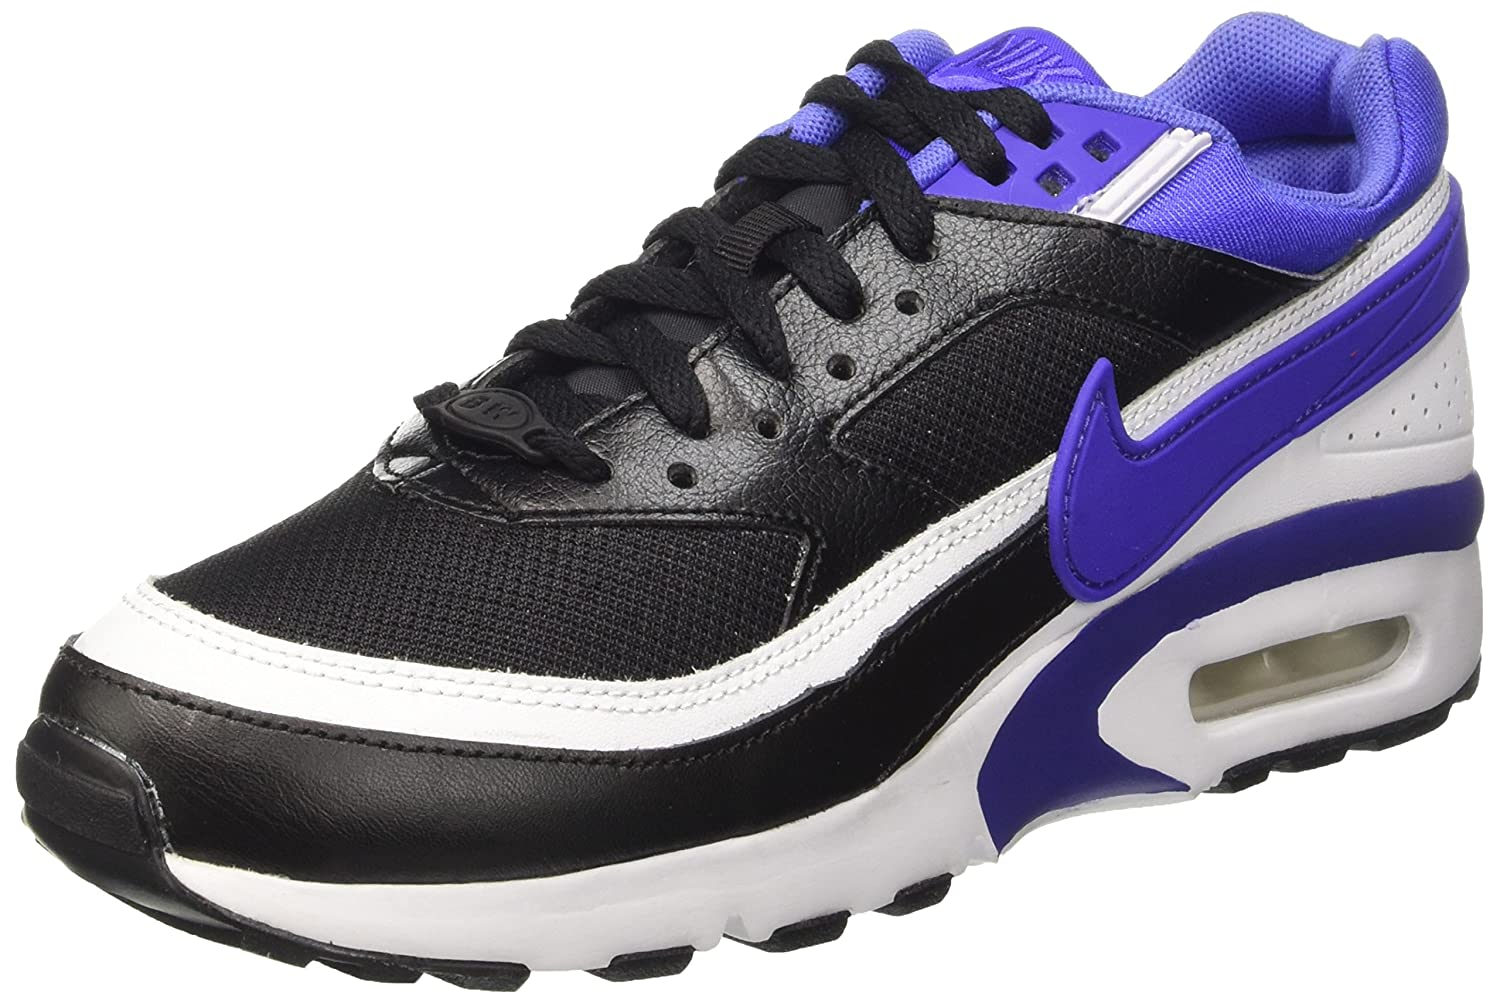 66702e9f28 ... new zealand nike boys air max bw gs competition running shoes amazon  shoes bags 7e34c 399ee